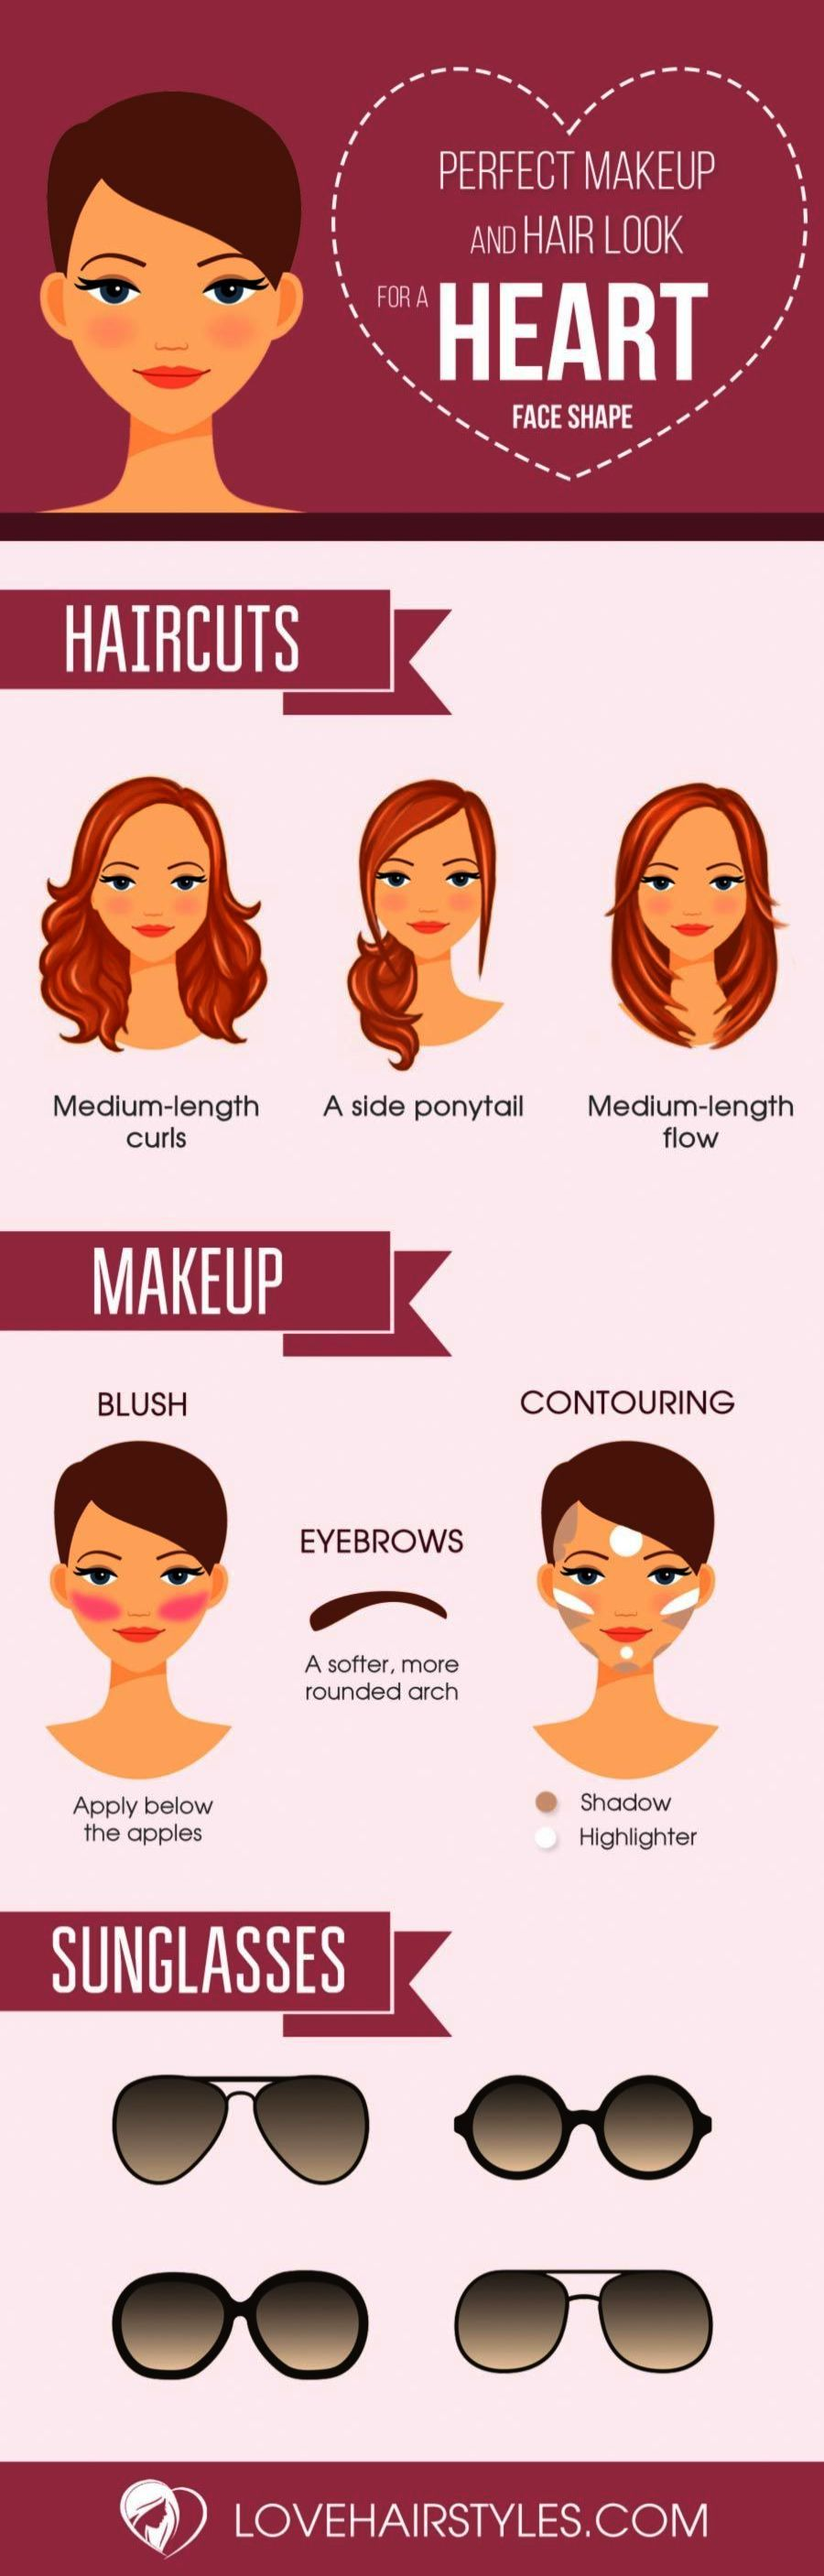 Pin By Best Makeup Guides On Makeup Styles In 2018 Pinterest